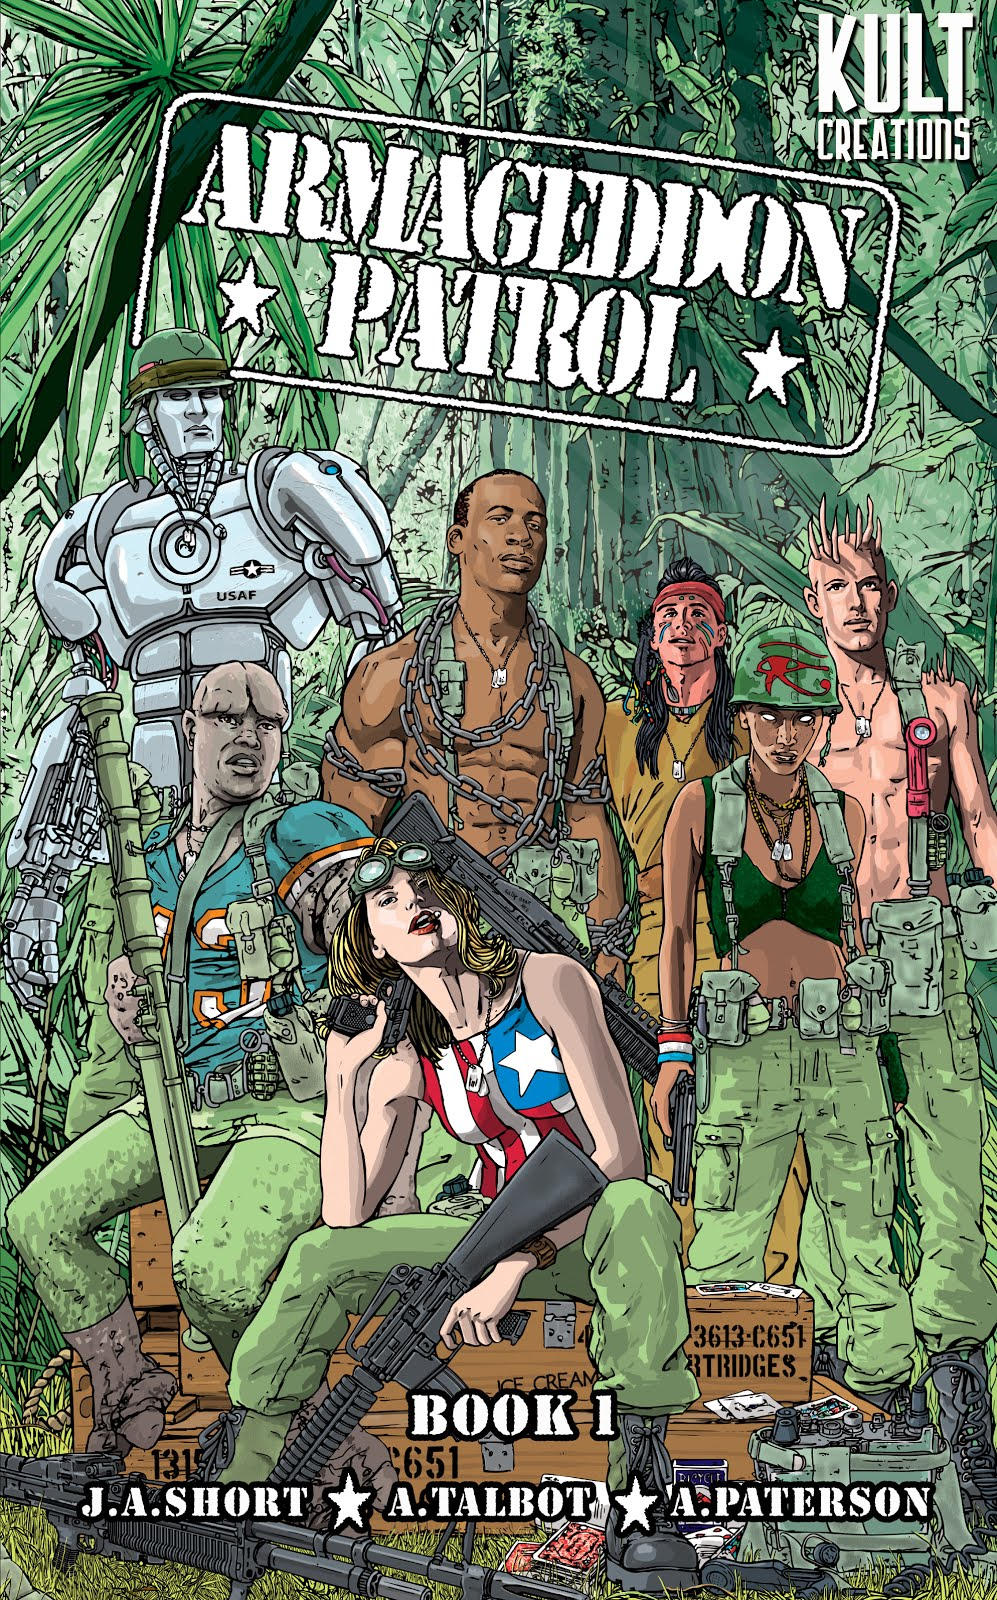 Link to buy ARMAGEDDON PATROL BOOK ONE - kindle